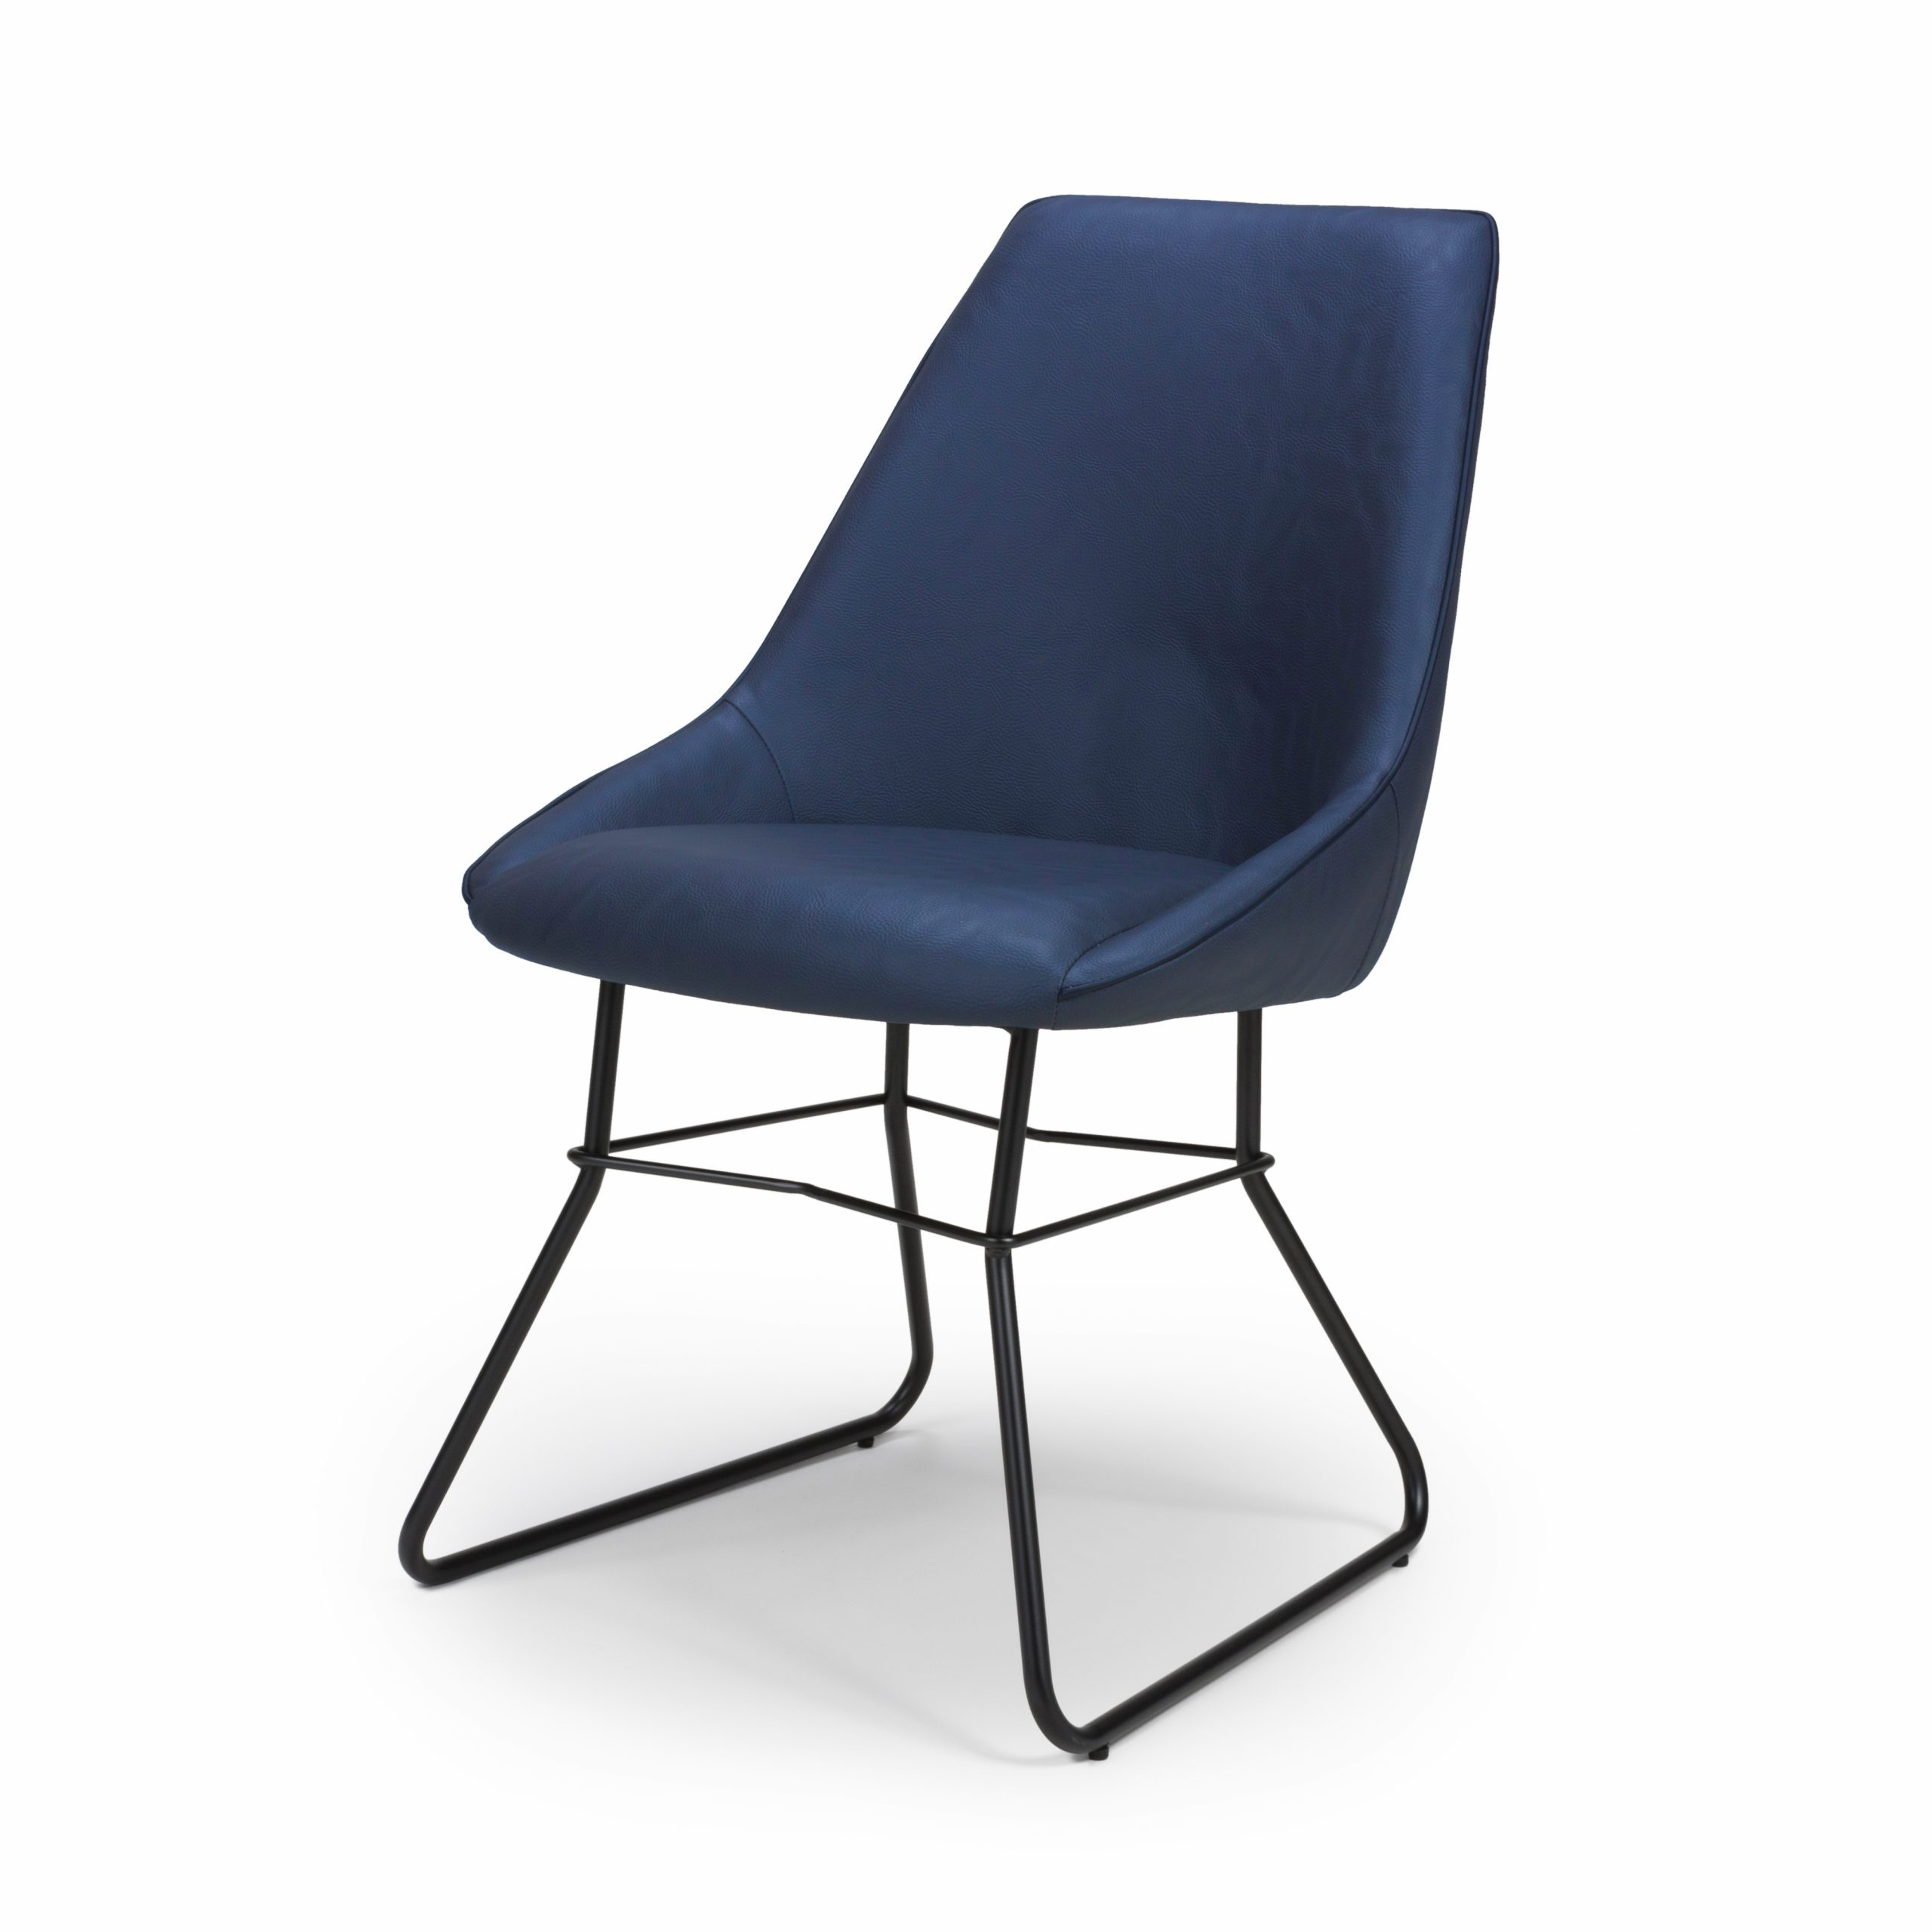 Hooper Blue leather dining chair